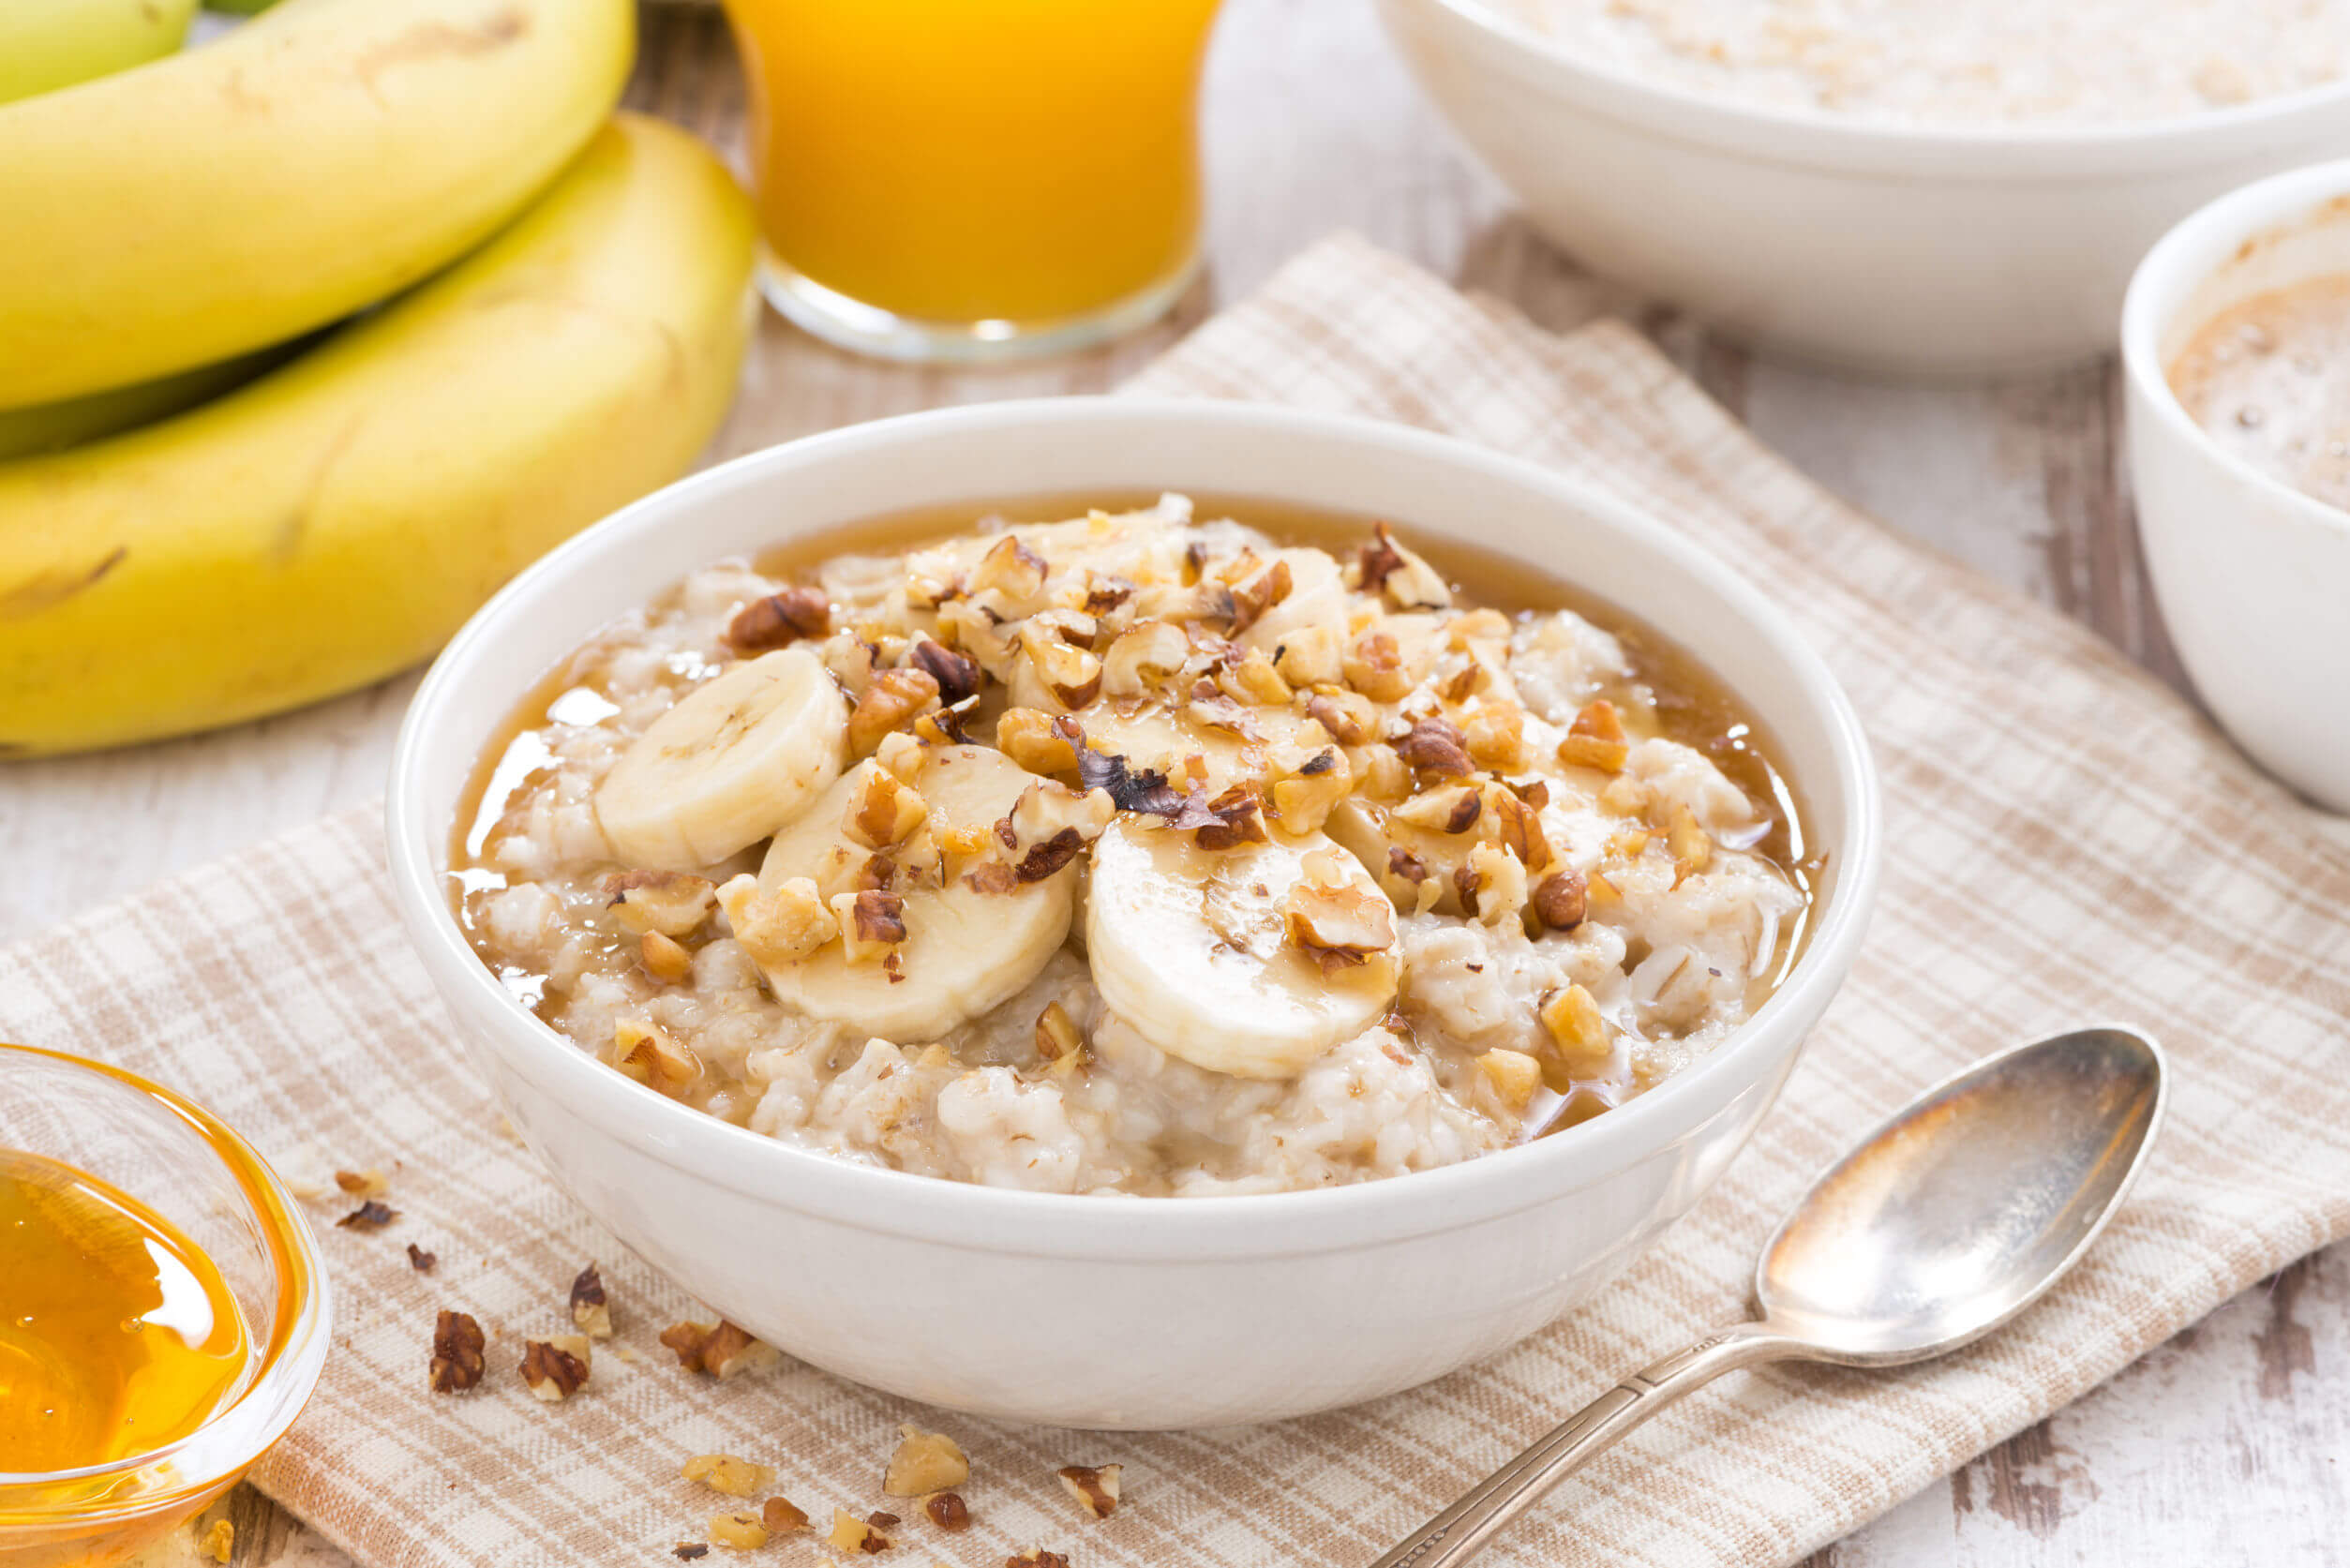 One of the best healthy breakfasts is a good bowl of oatmeal.